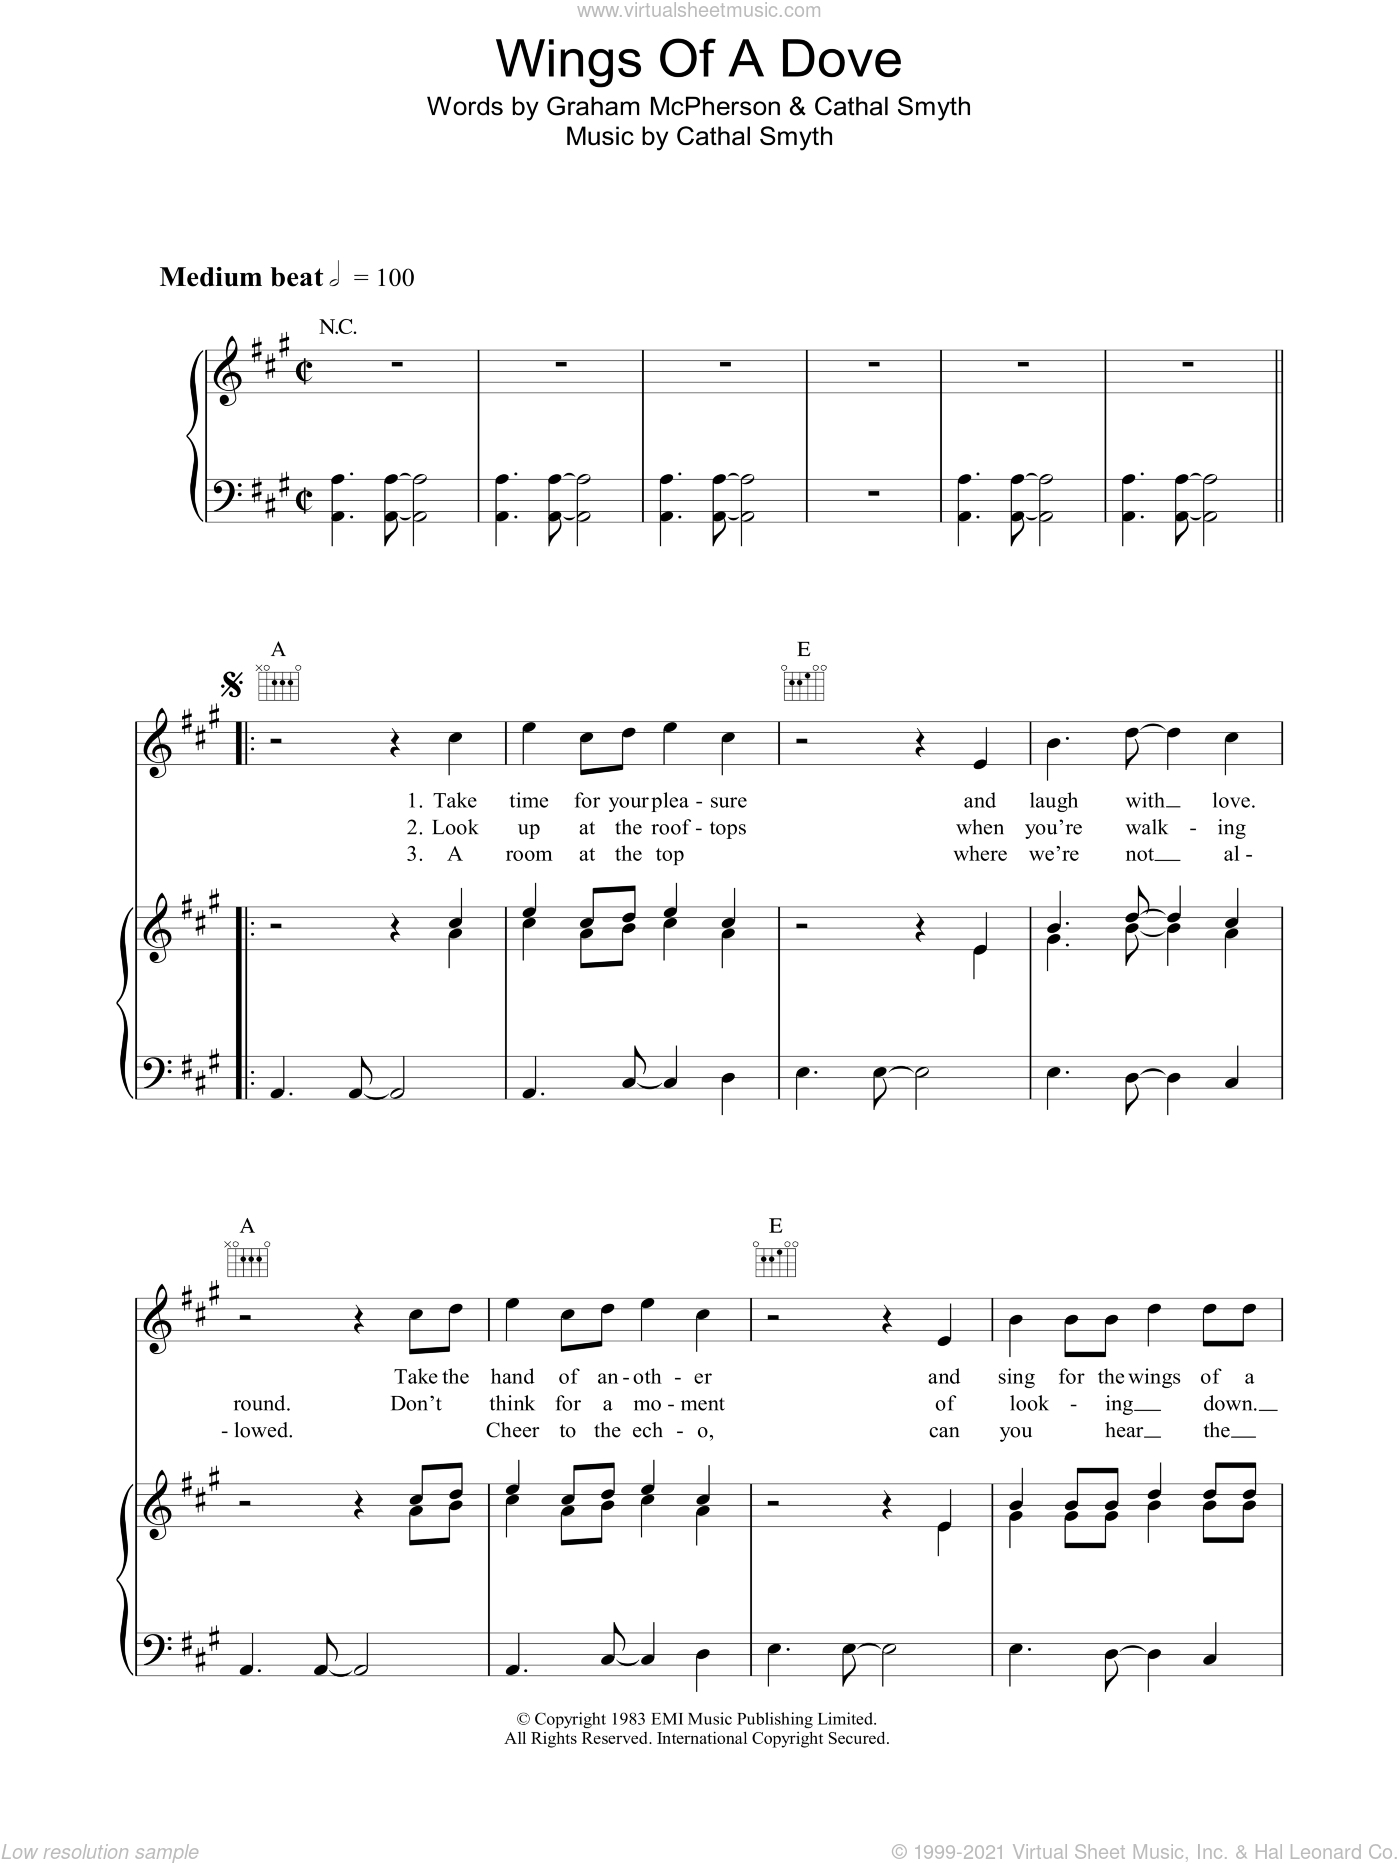 Wings Of A Dove sheet music for voice, piano or guitar by Cathal Smyth